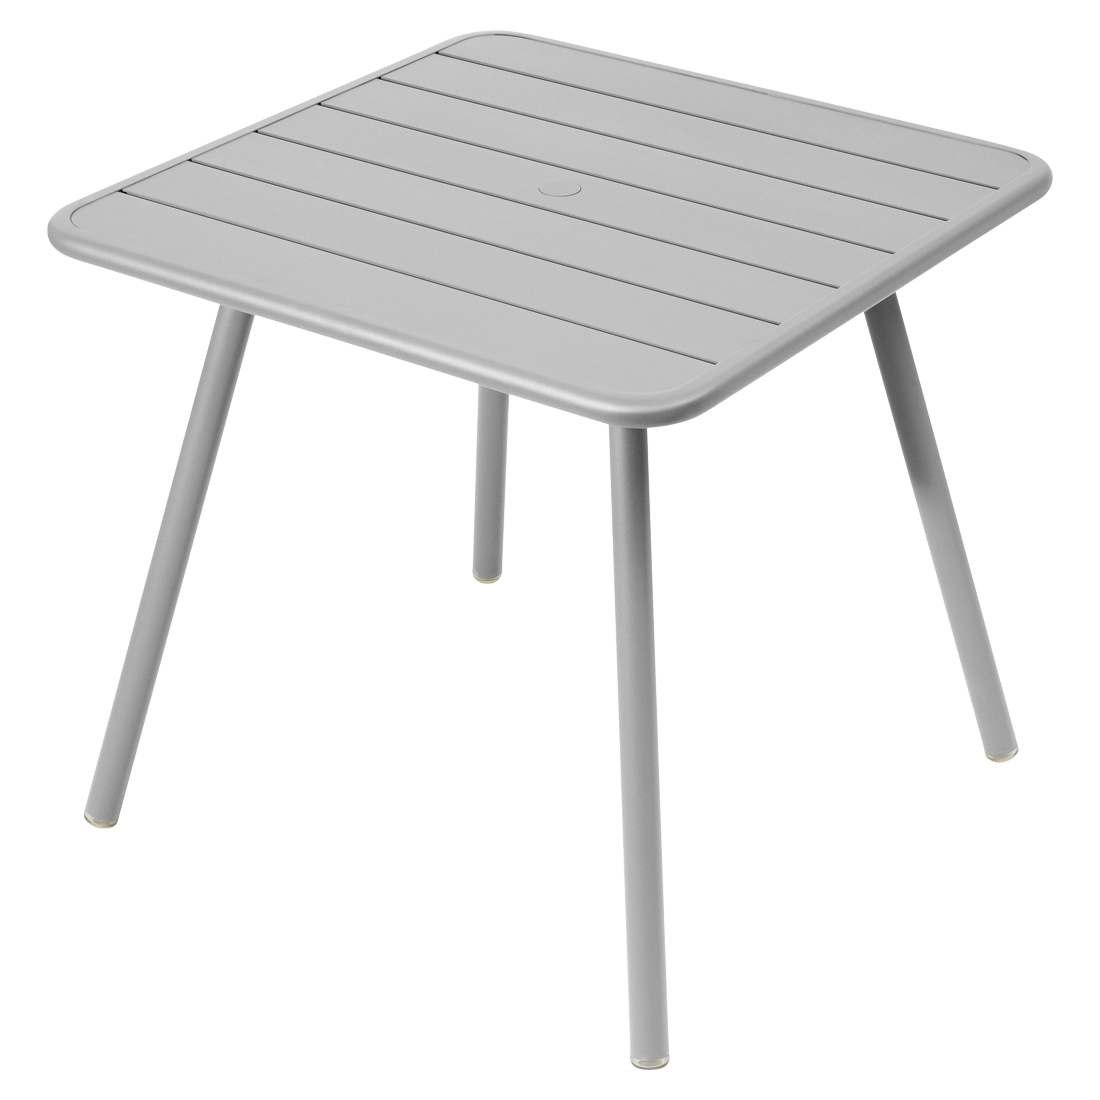 Table 80x80 cm 4 pieds luxembourg table de jardin metal for Table design 80 cm